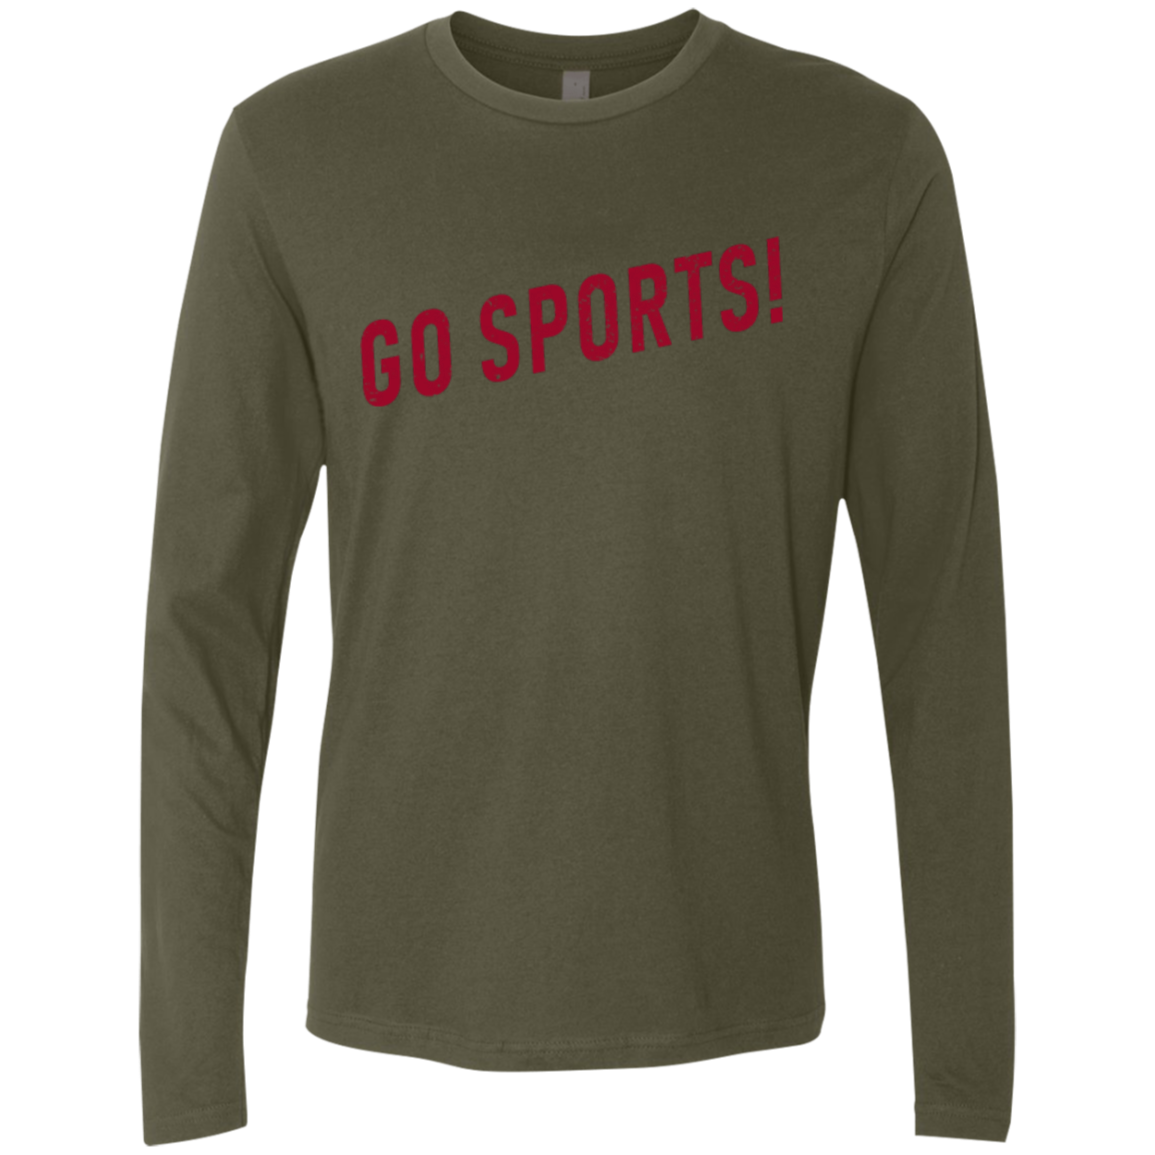 Go Sports! Men's Long Sleeve Tee